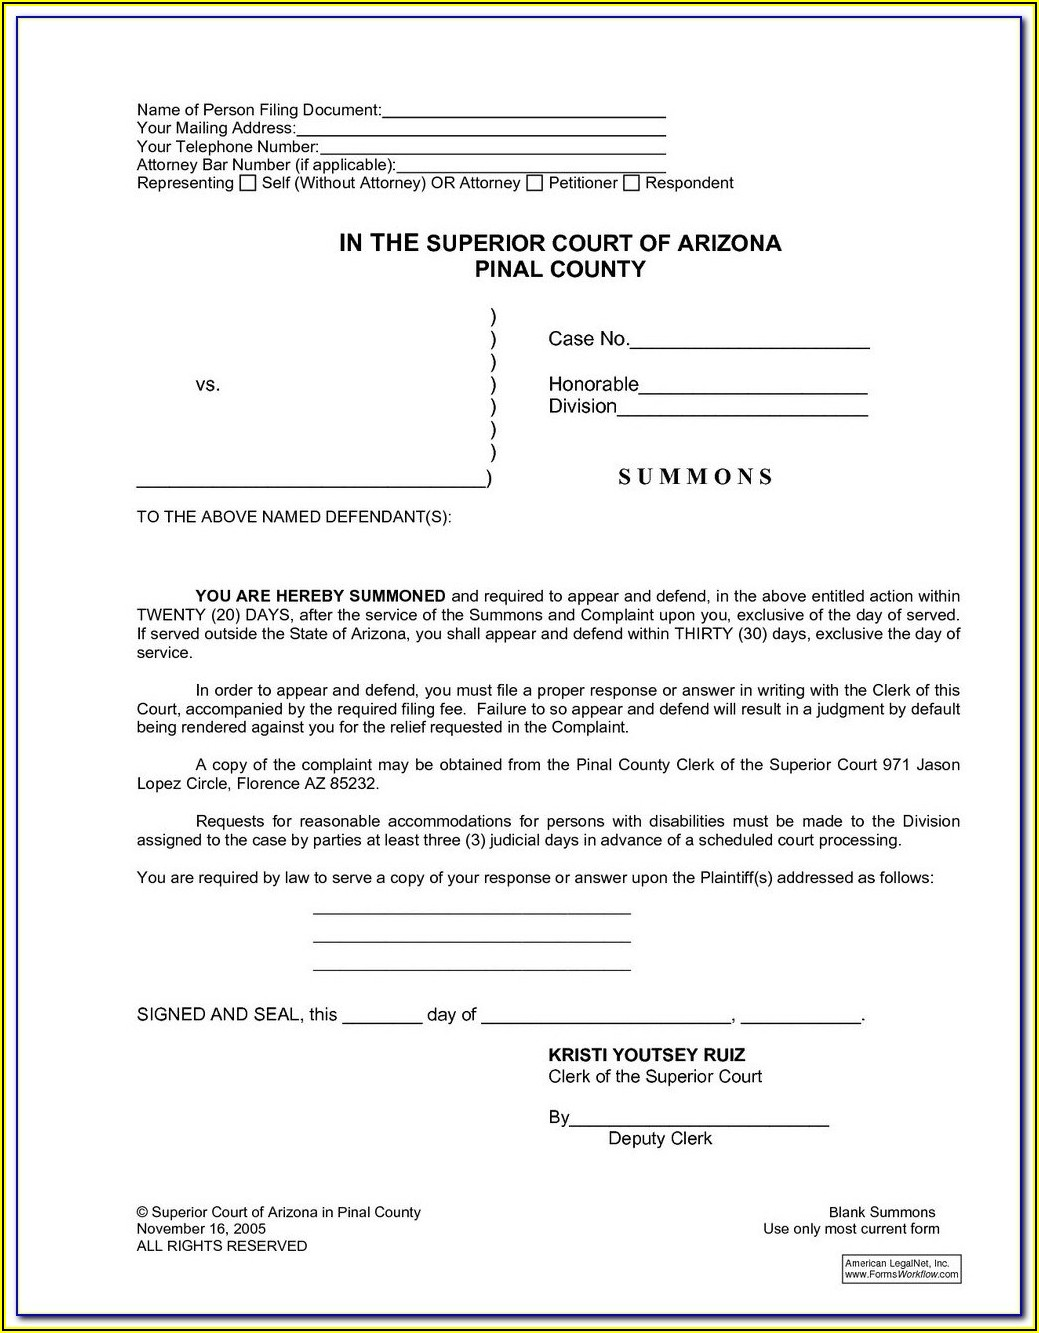 Fulton County Superior Court Divorce Filing Fee